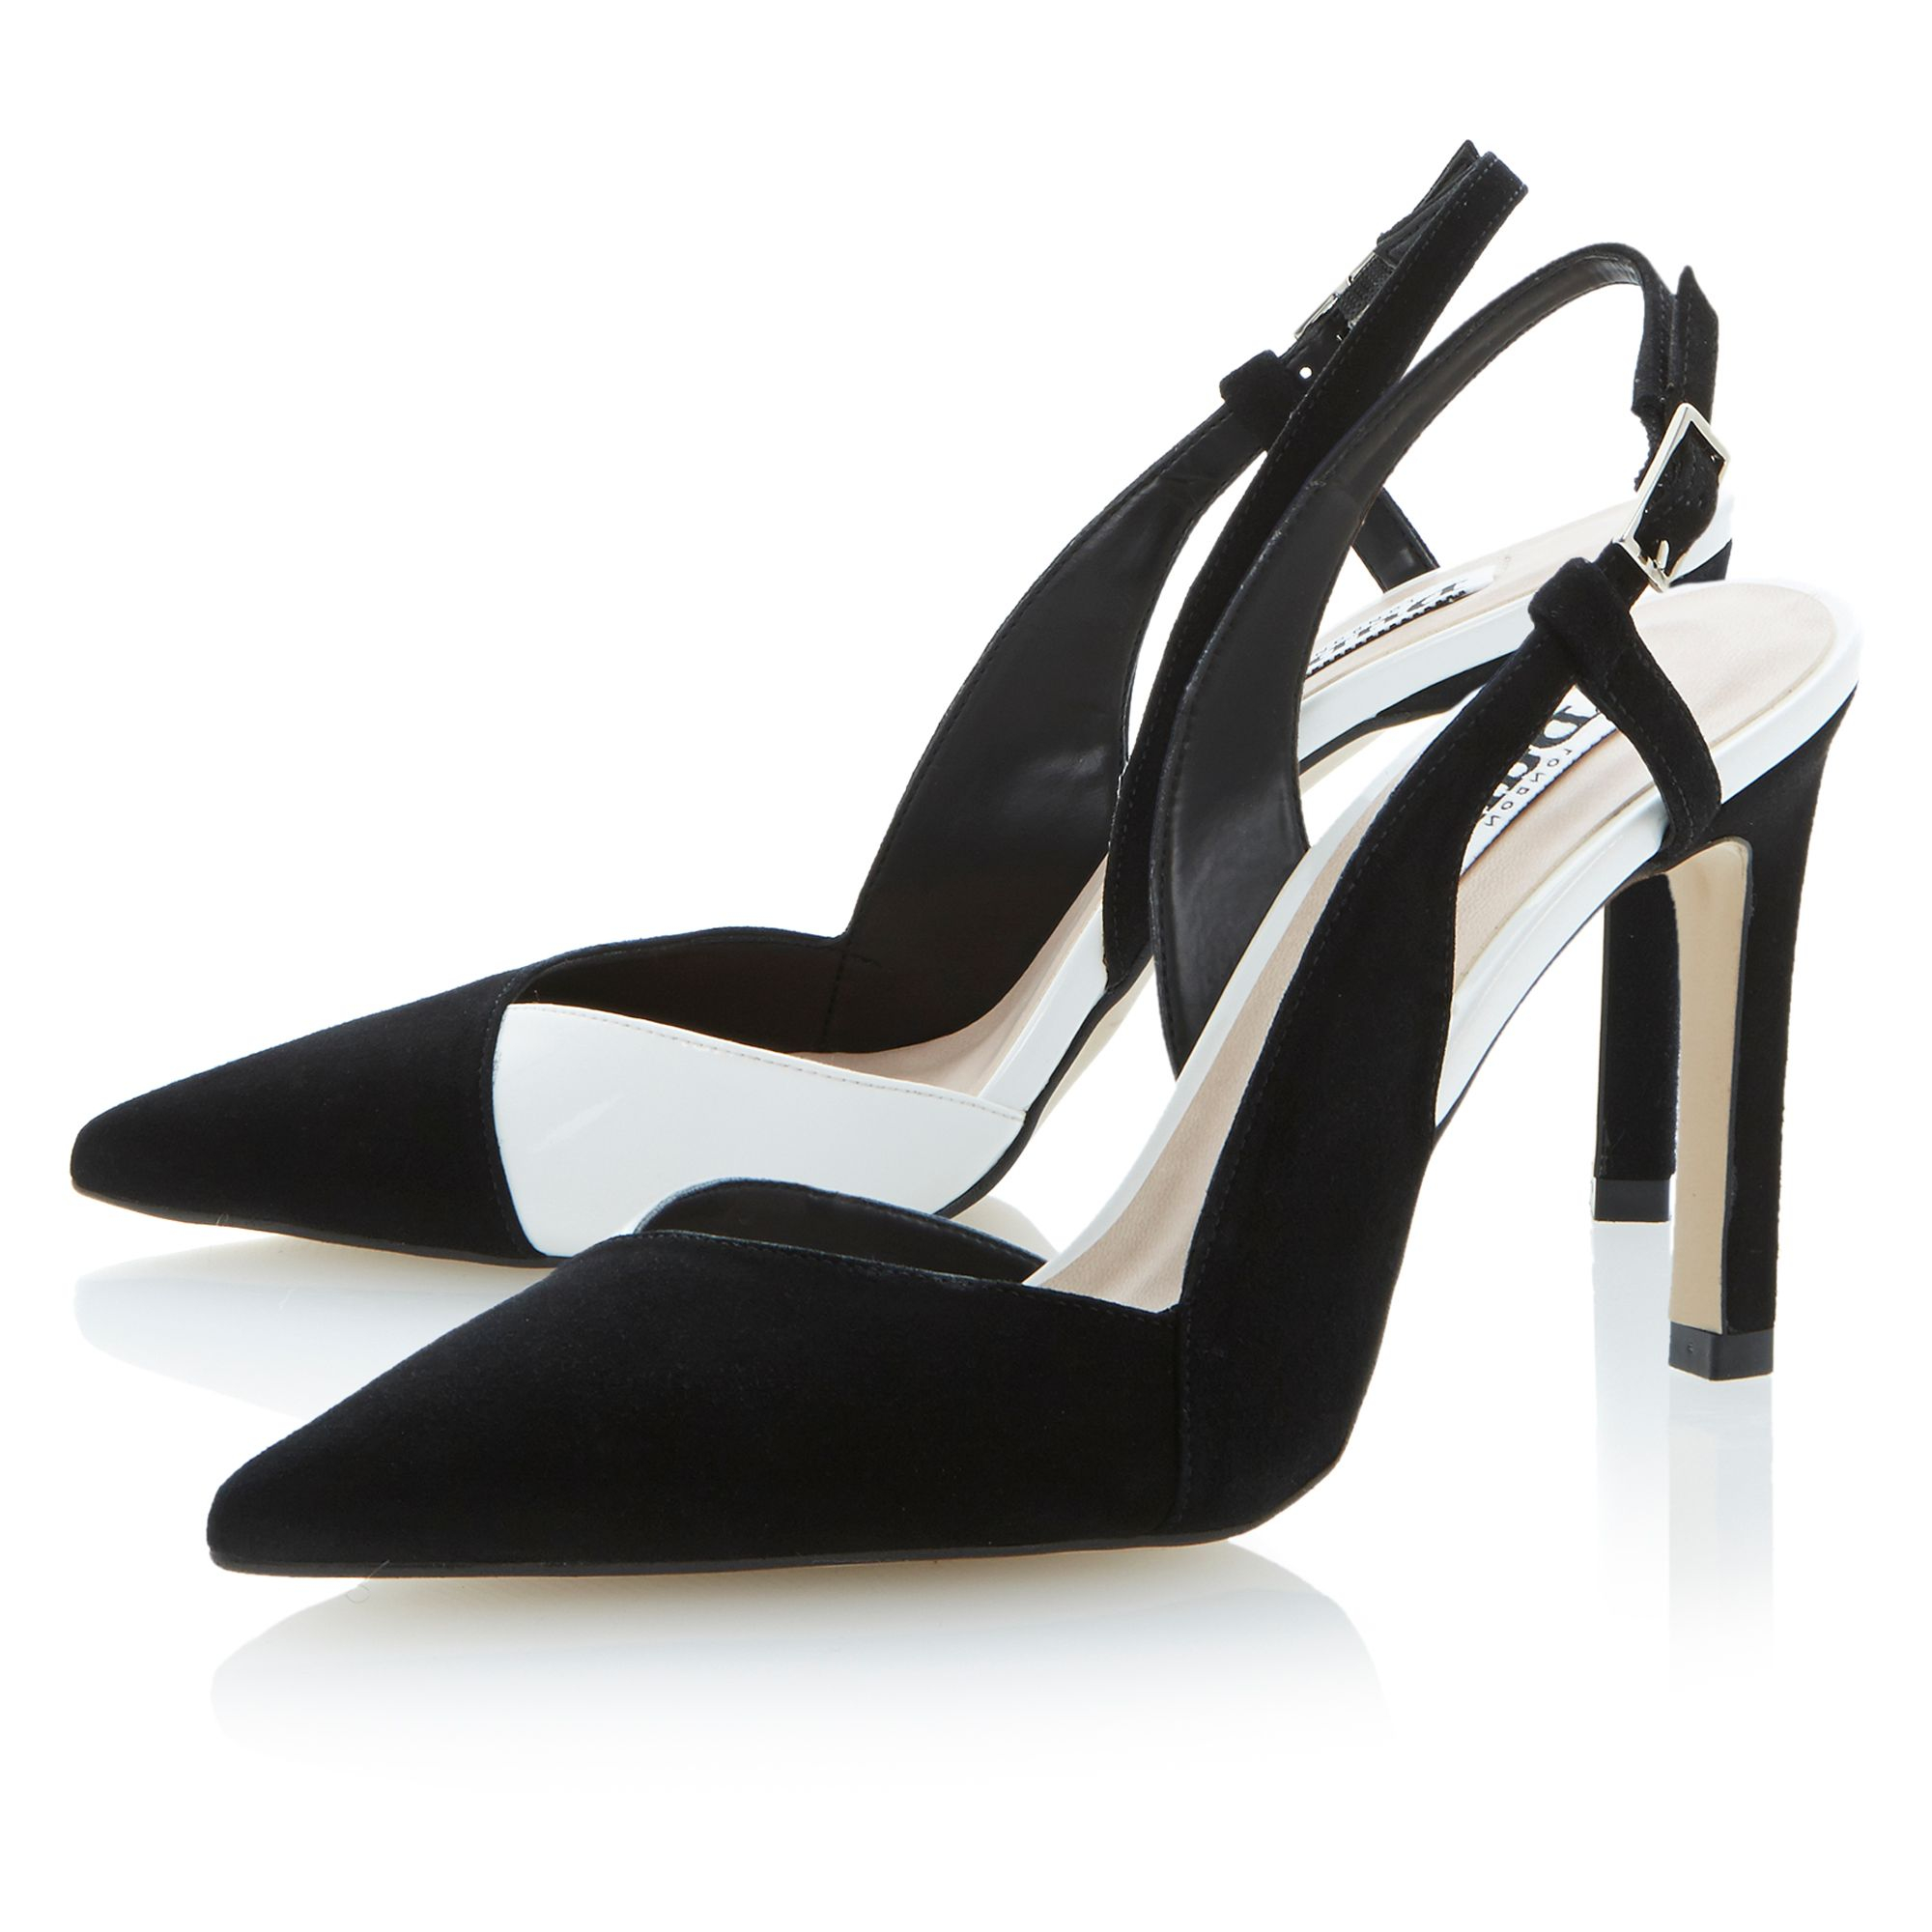 dune suede pointed toe stiletto court shoes in